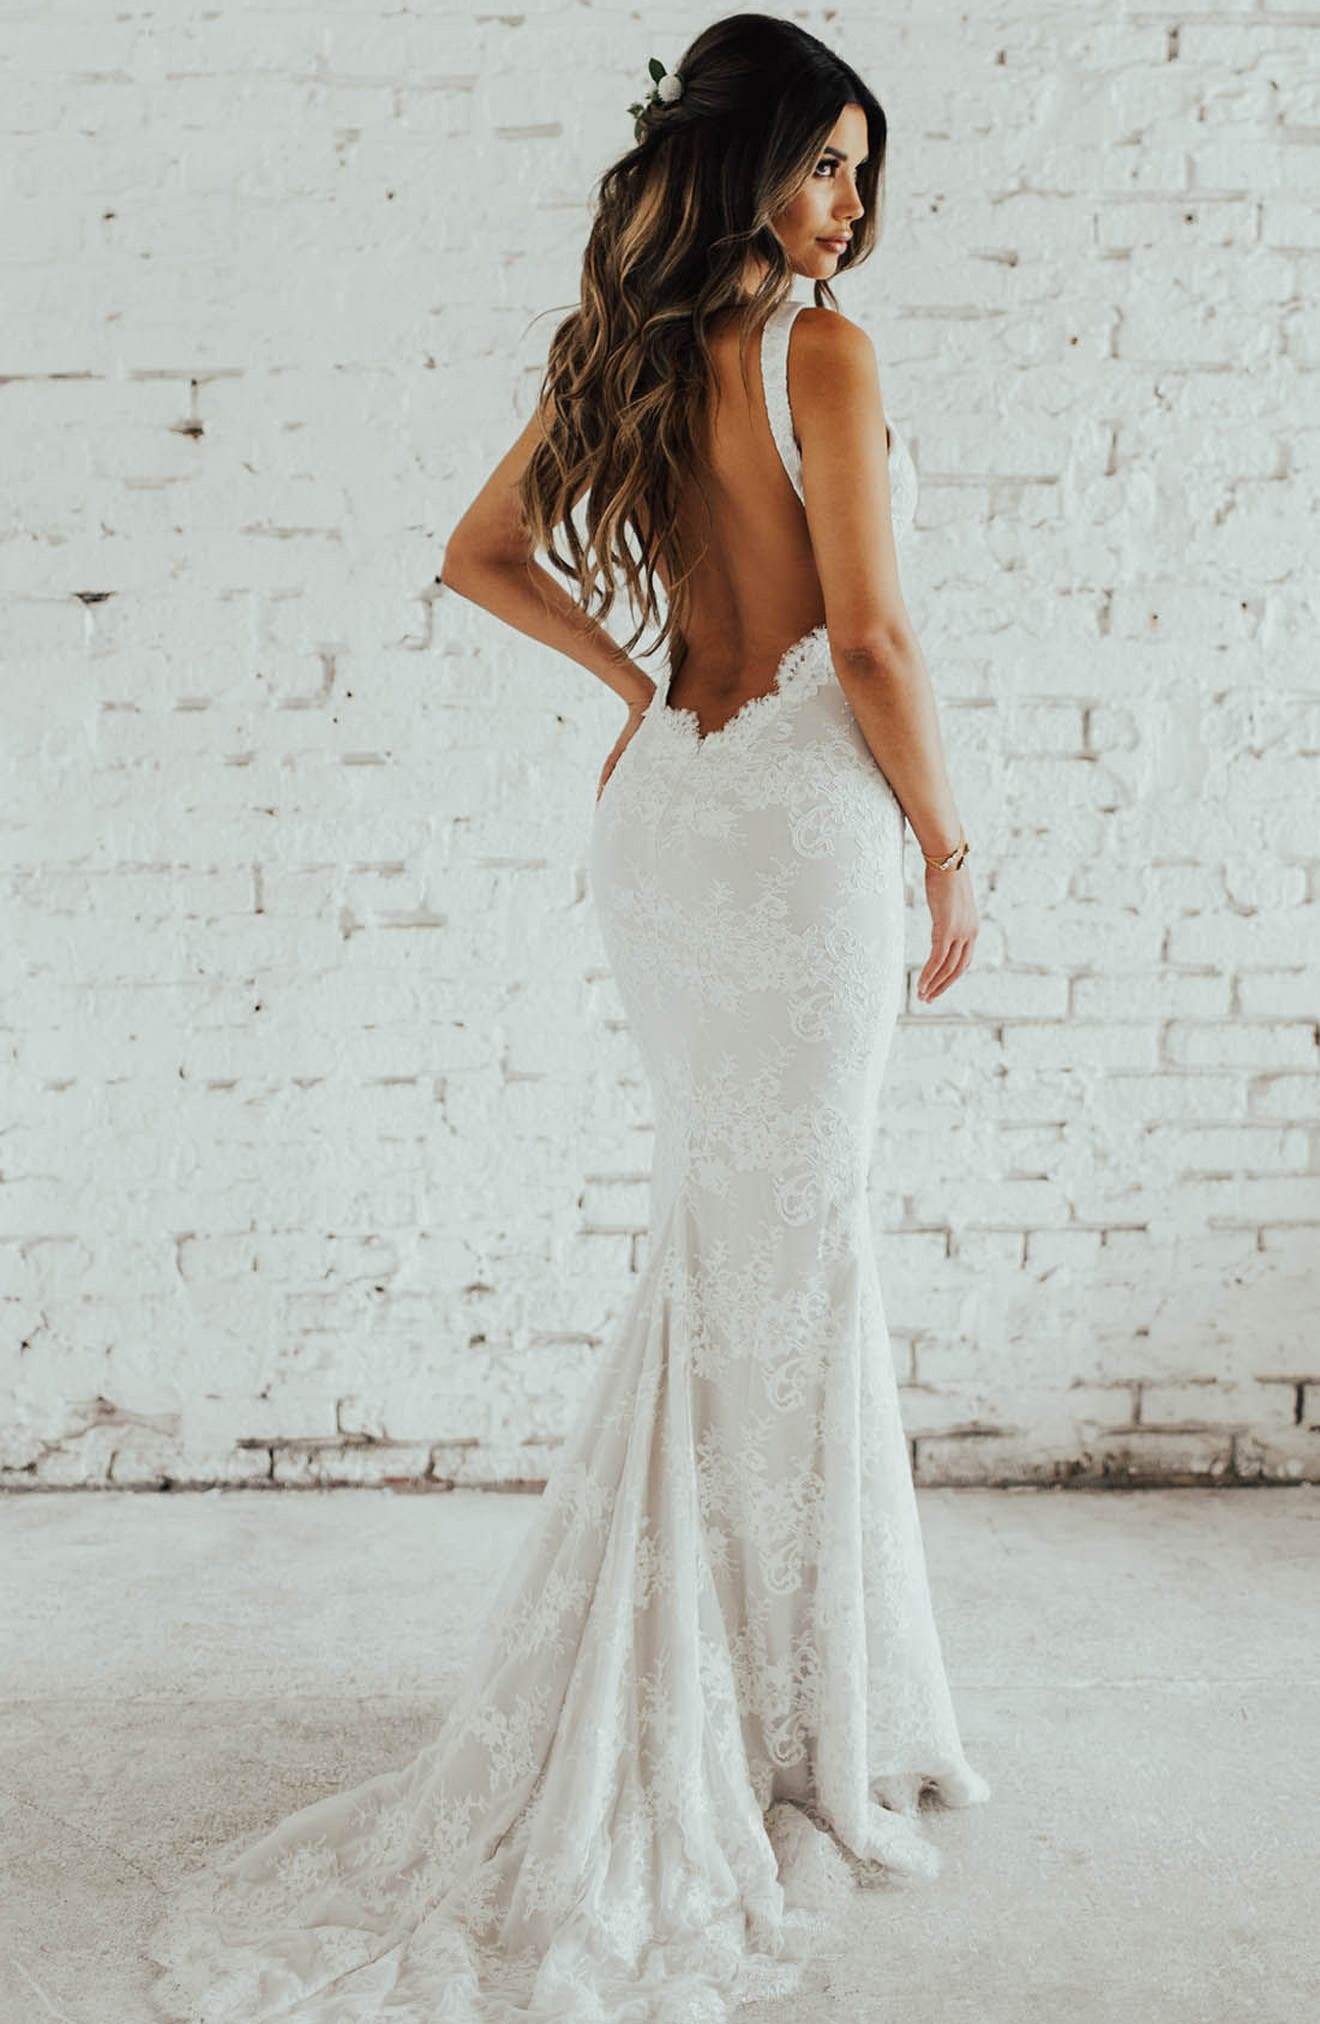 Oslo Chantilly Lace Mermaid Gown,                             Alternate thumbnail 2, color,                             Ivory/ Nude